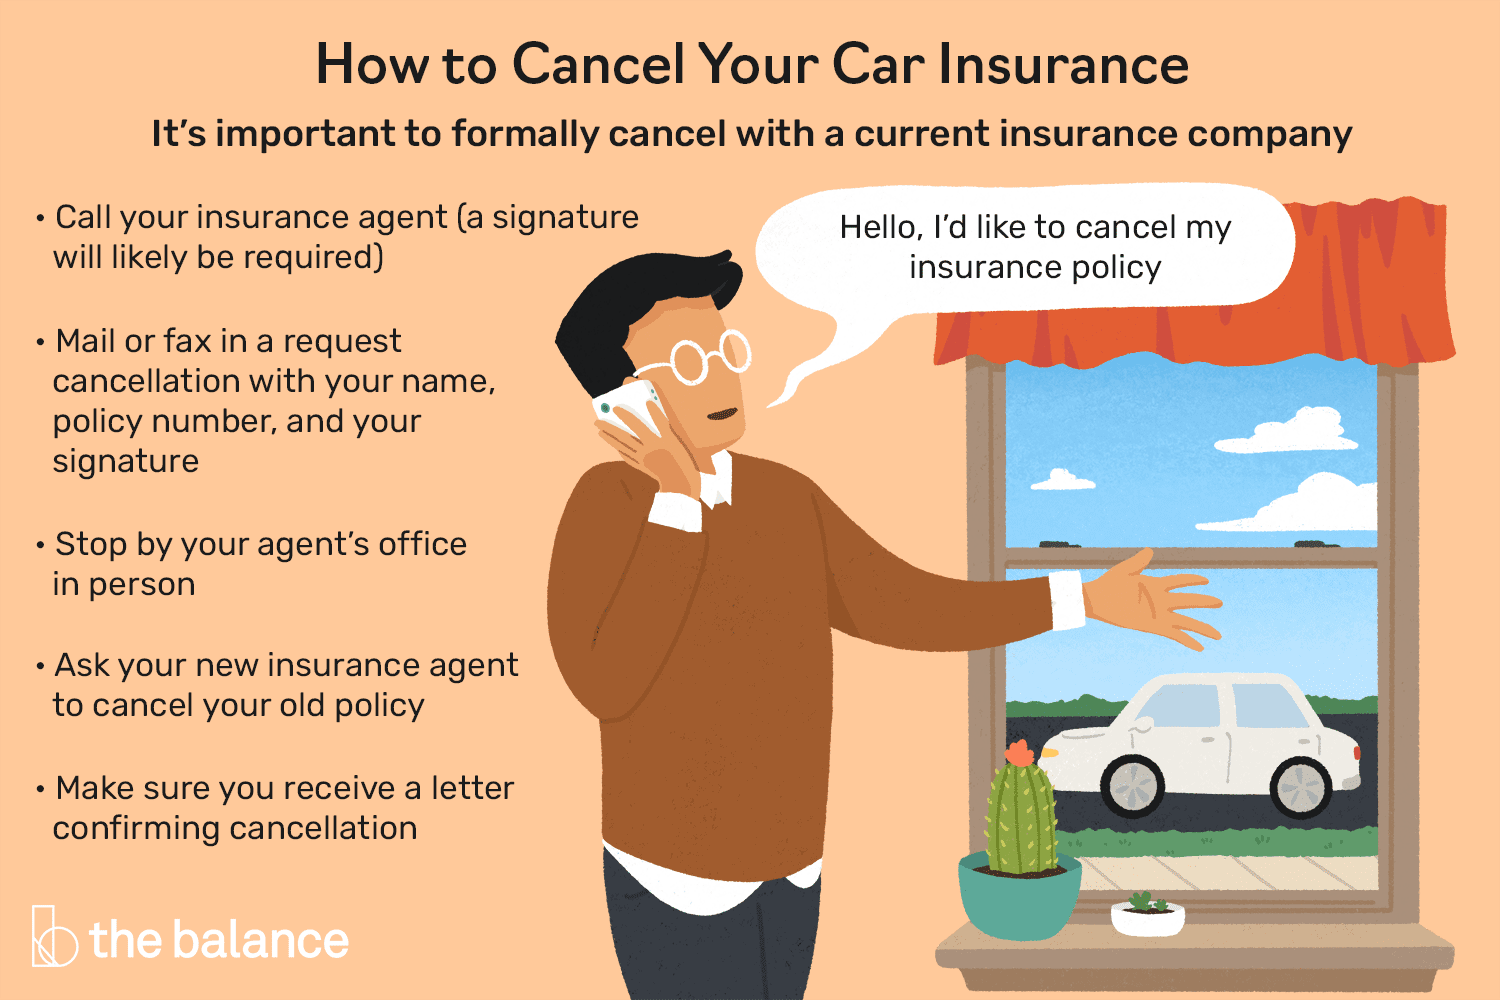 4 Ways to Cancel Your Auto Insurance Policy